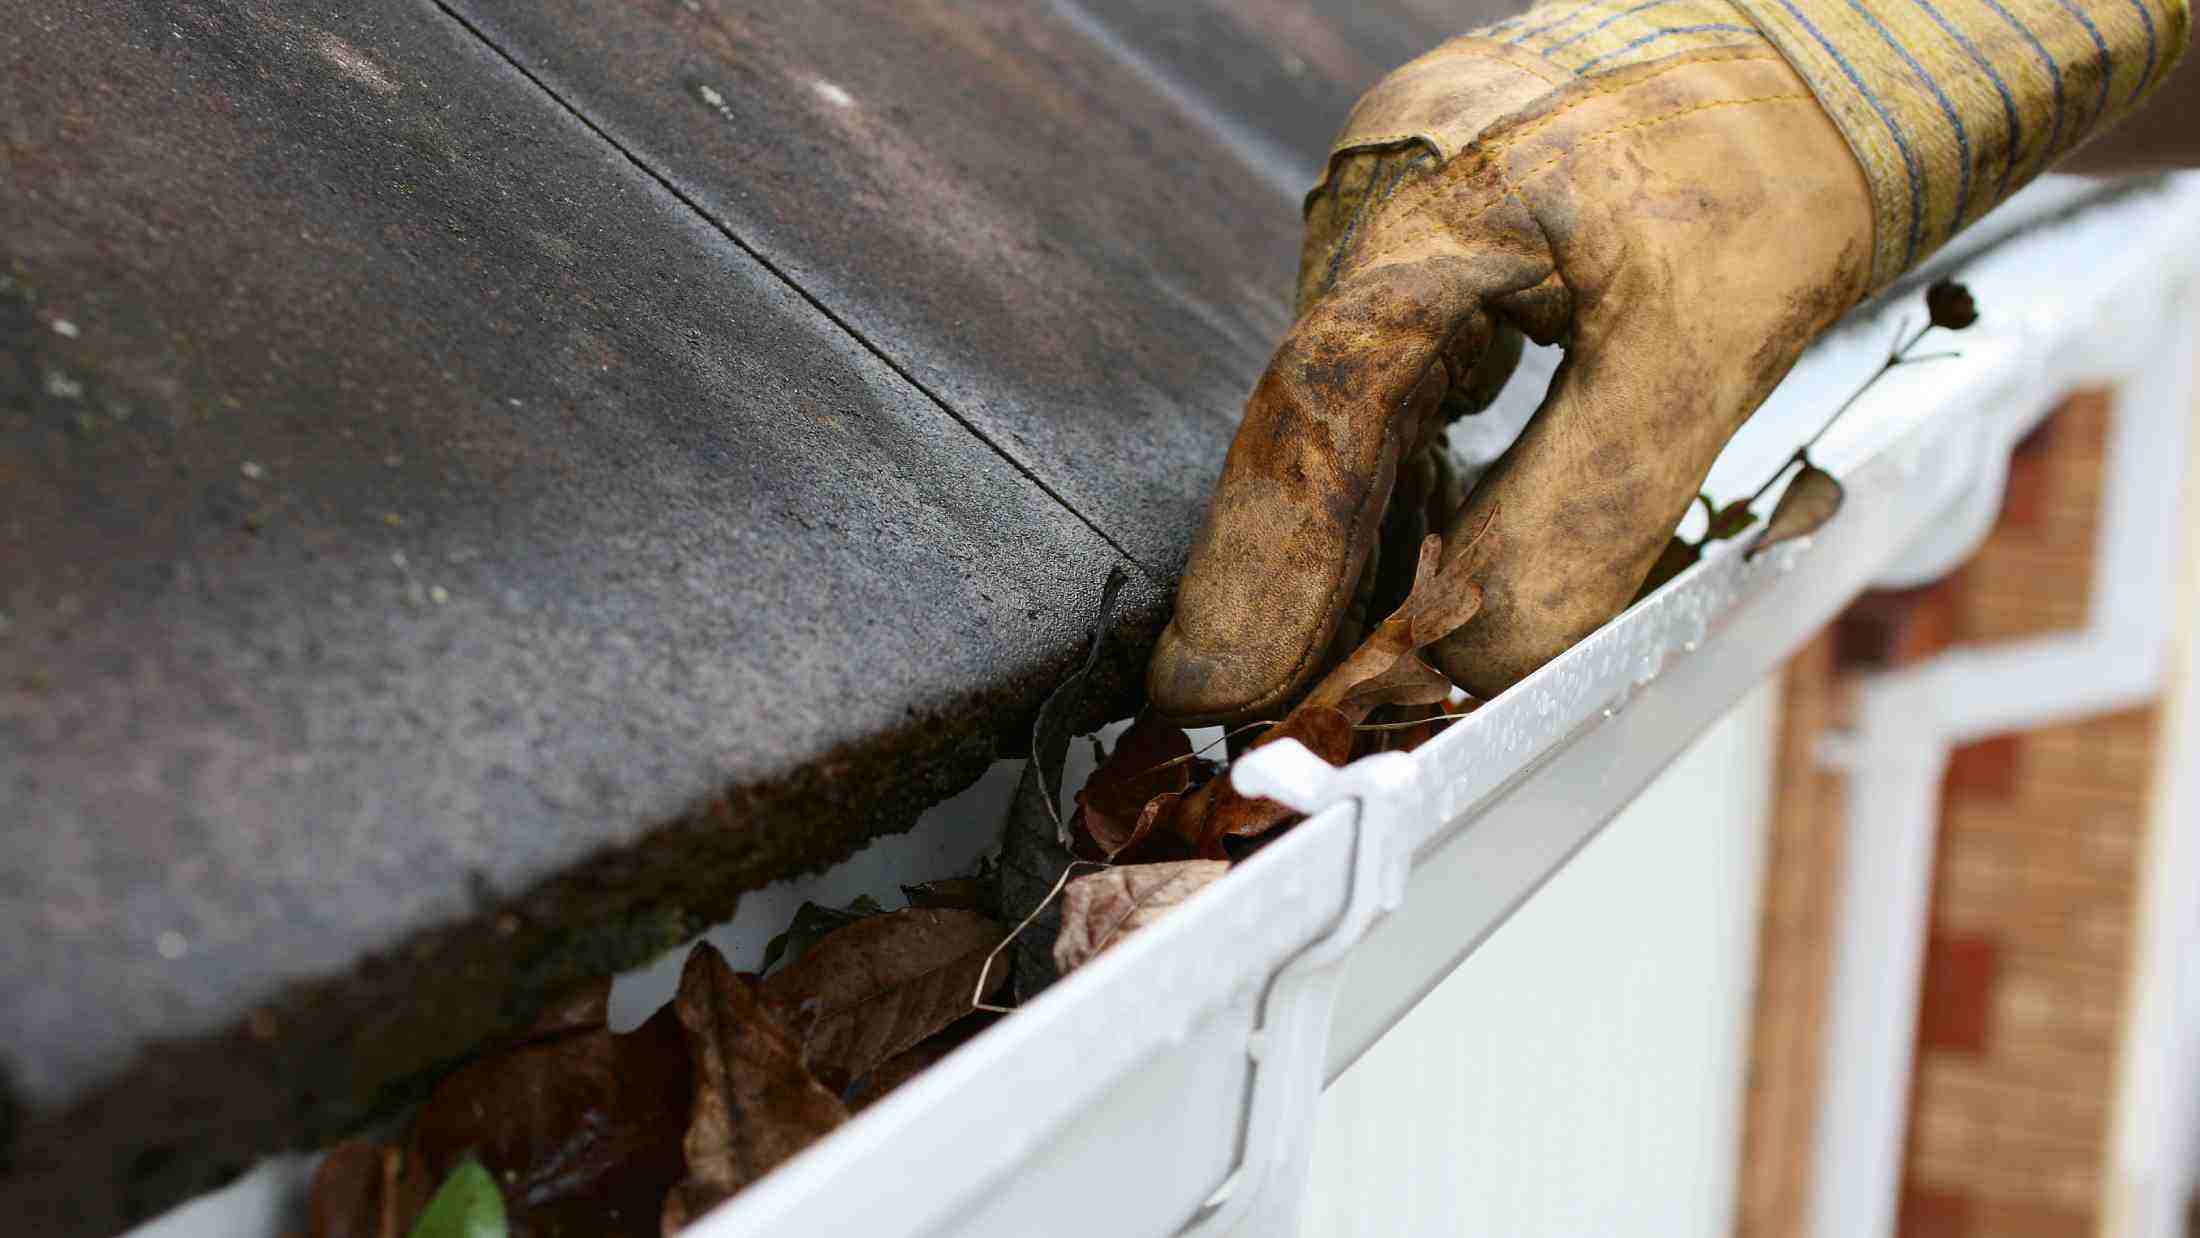 Glove being used to clear a gutter full of leaves